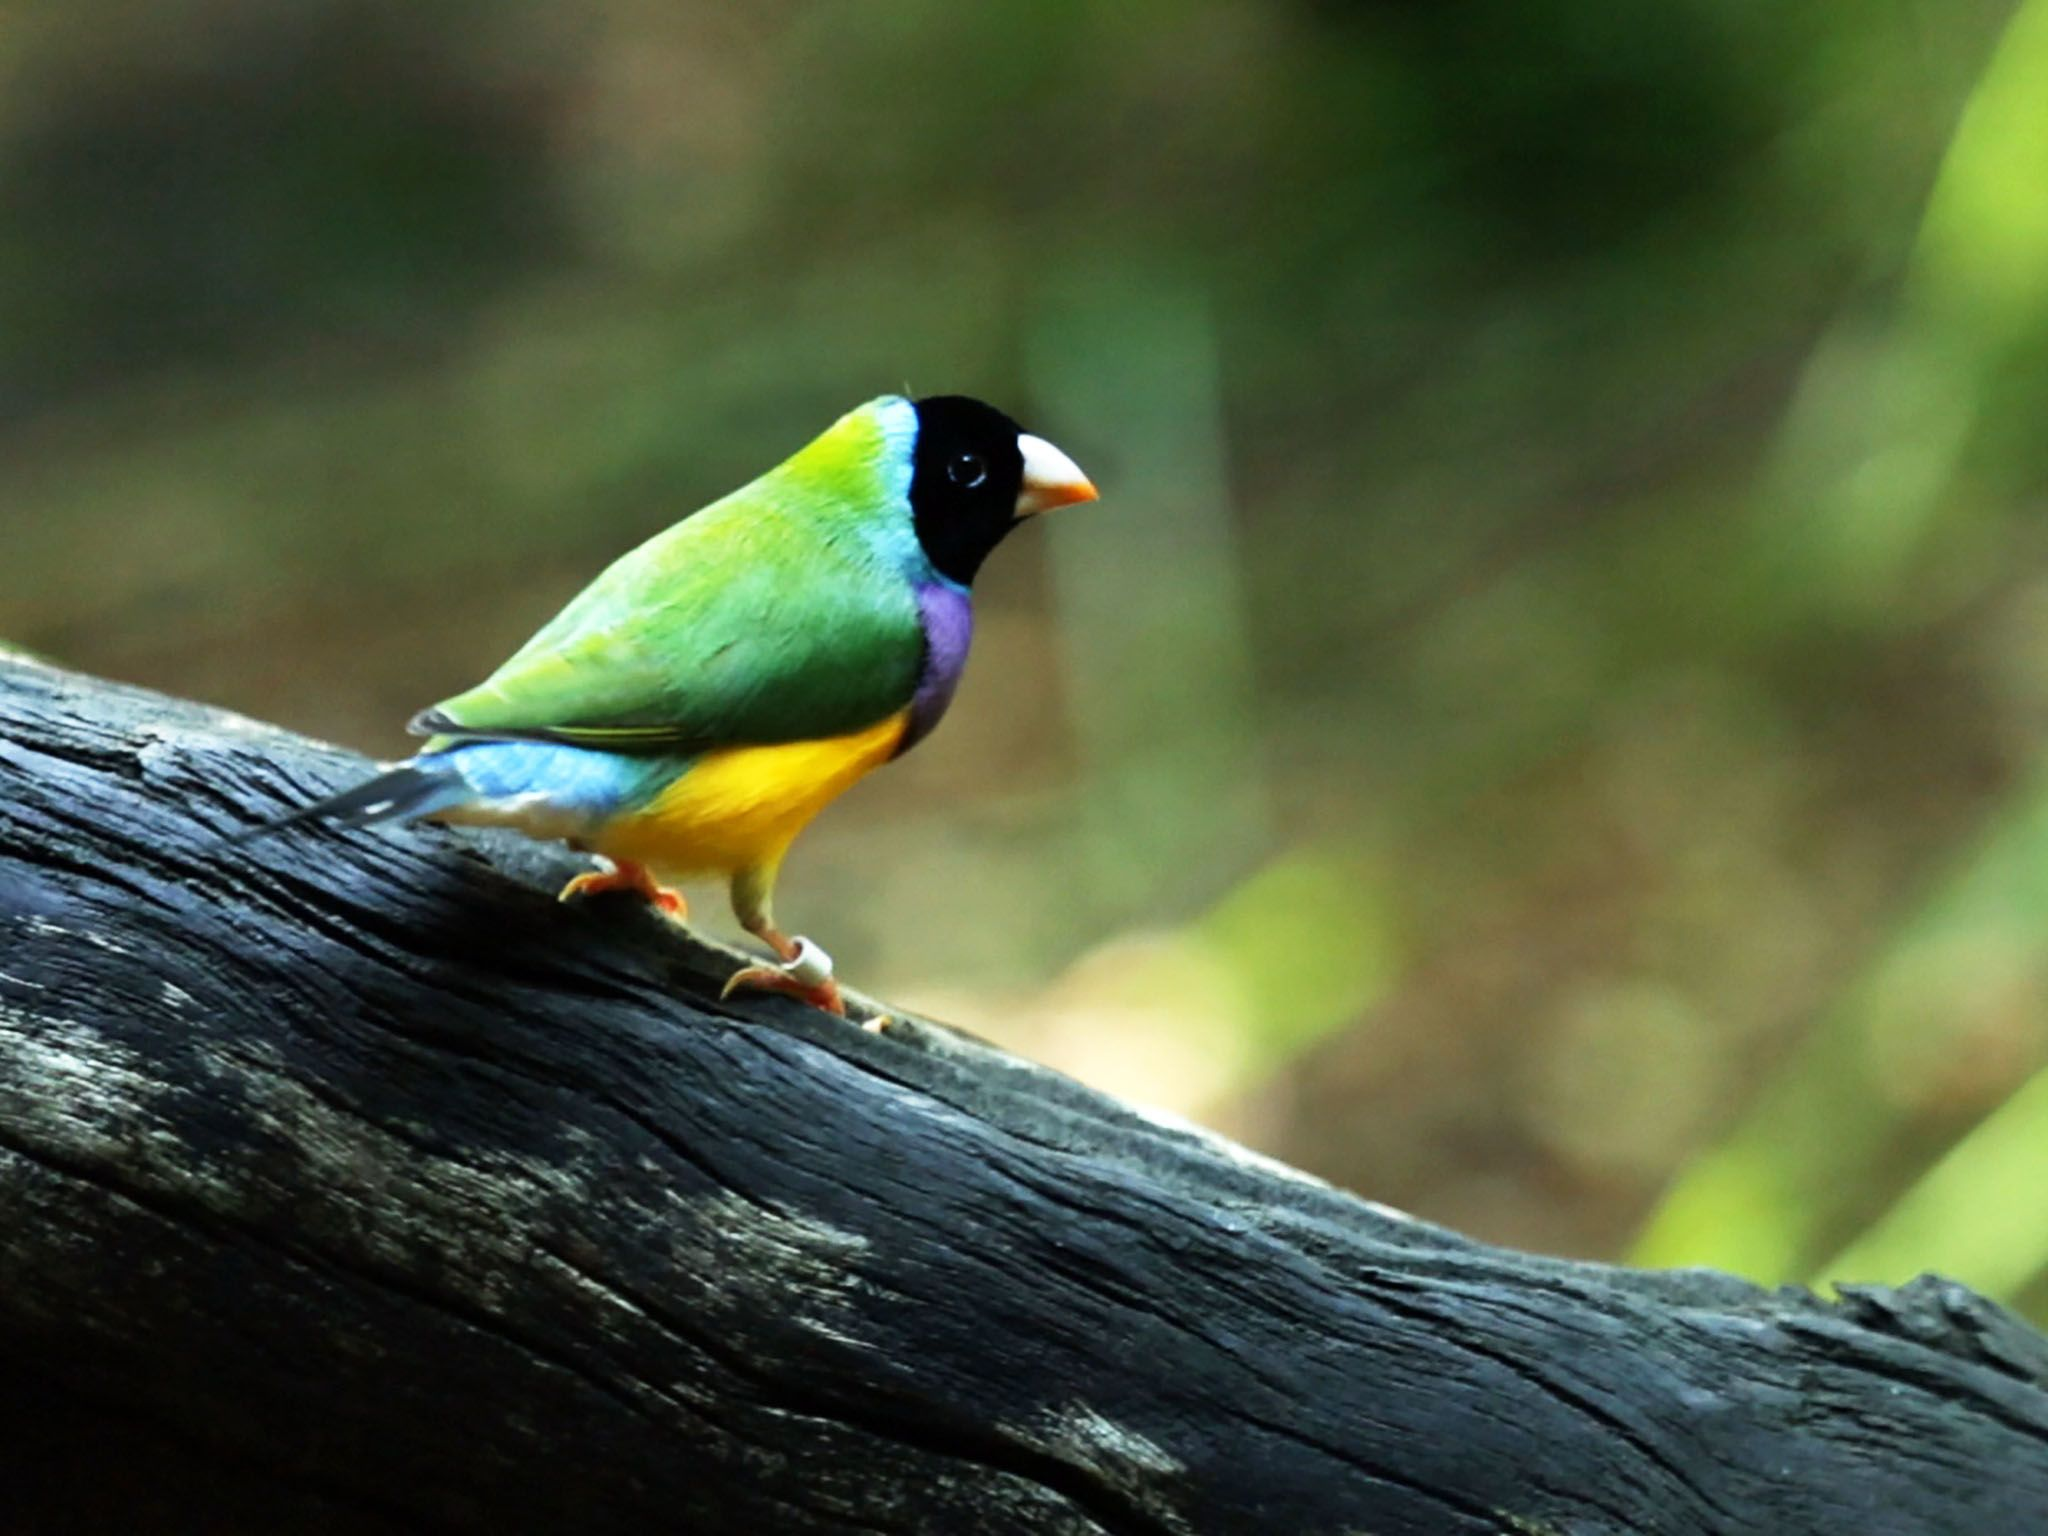 Northern Territory Wildlife Park, Northern Territory Australia: The gouldian finch (Erythrura... [Photo of the day - March 2016]